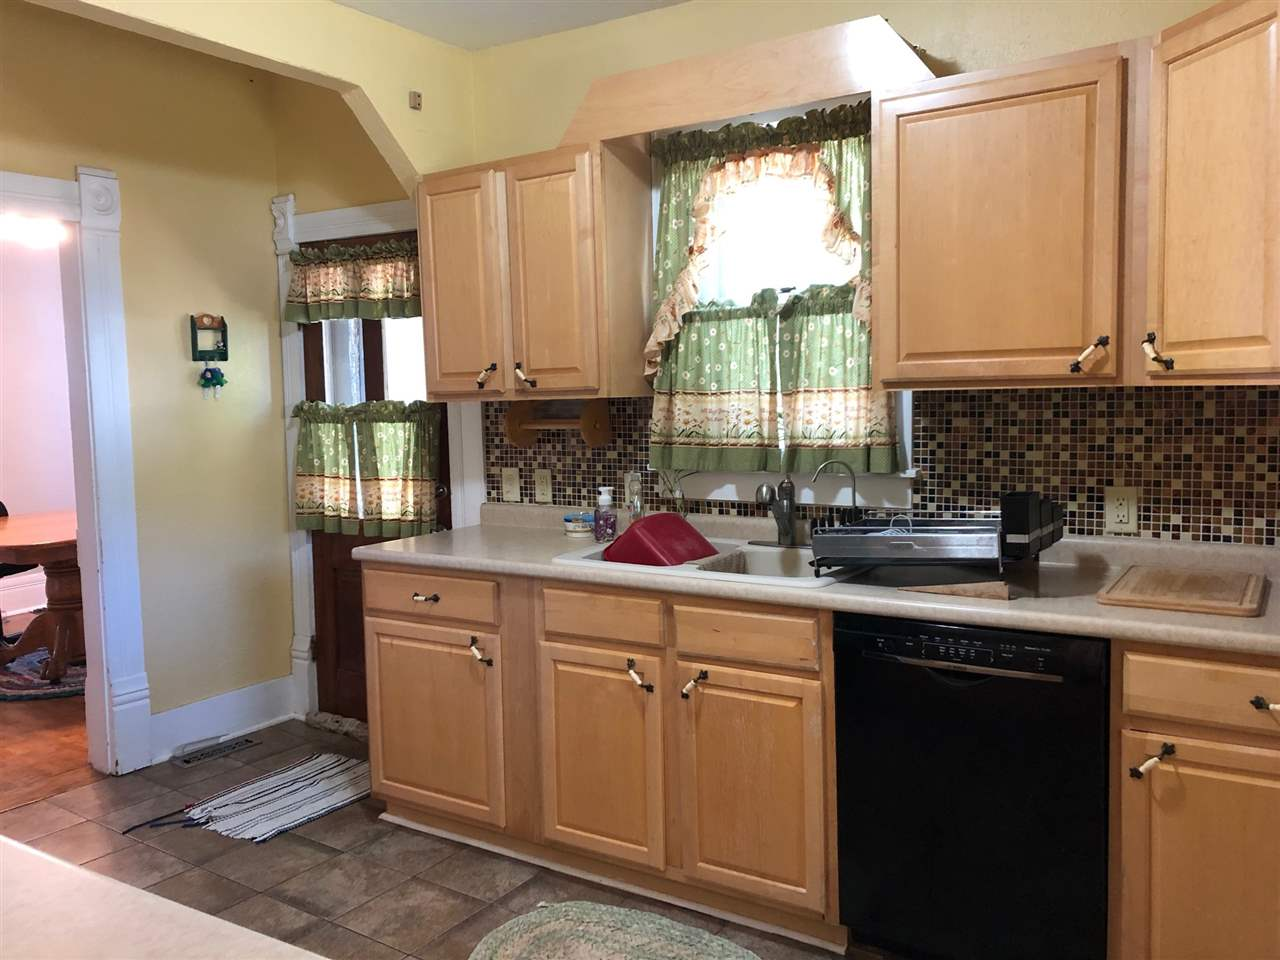 For Sale: 602 E 11TH AVE, Winfield KS